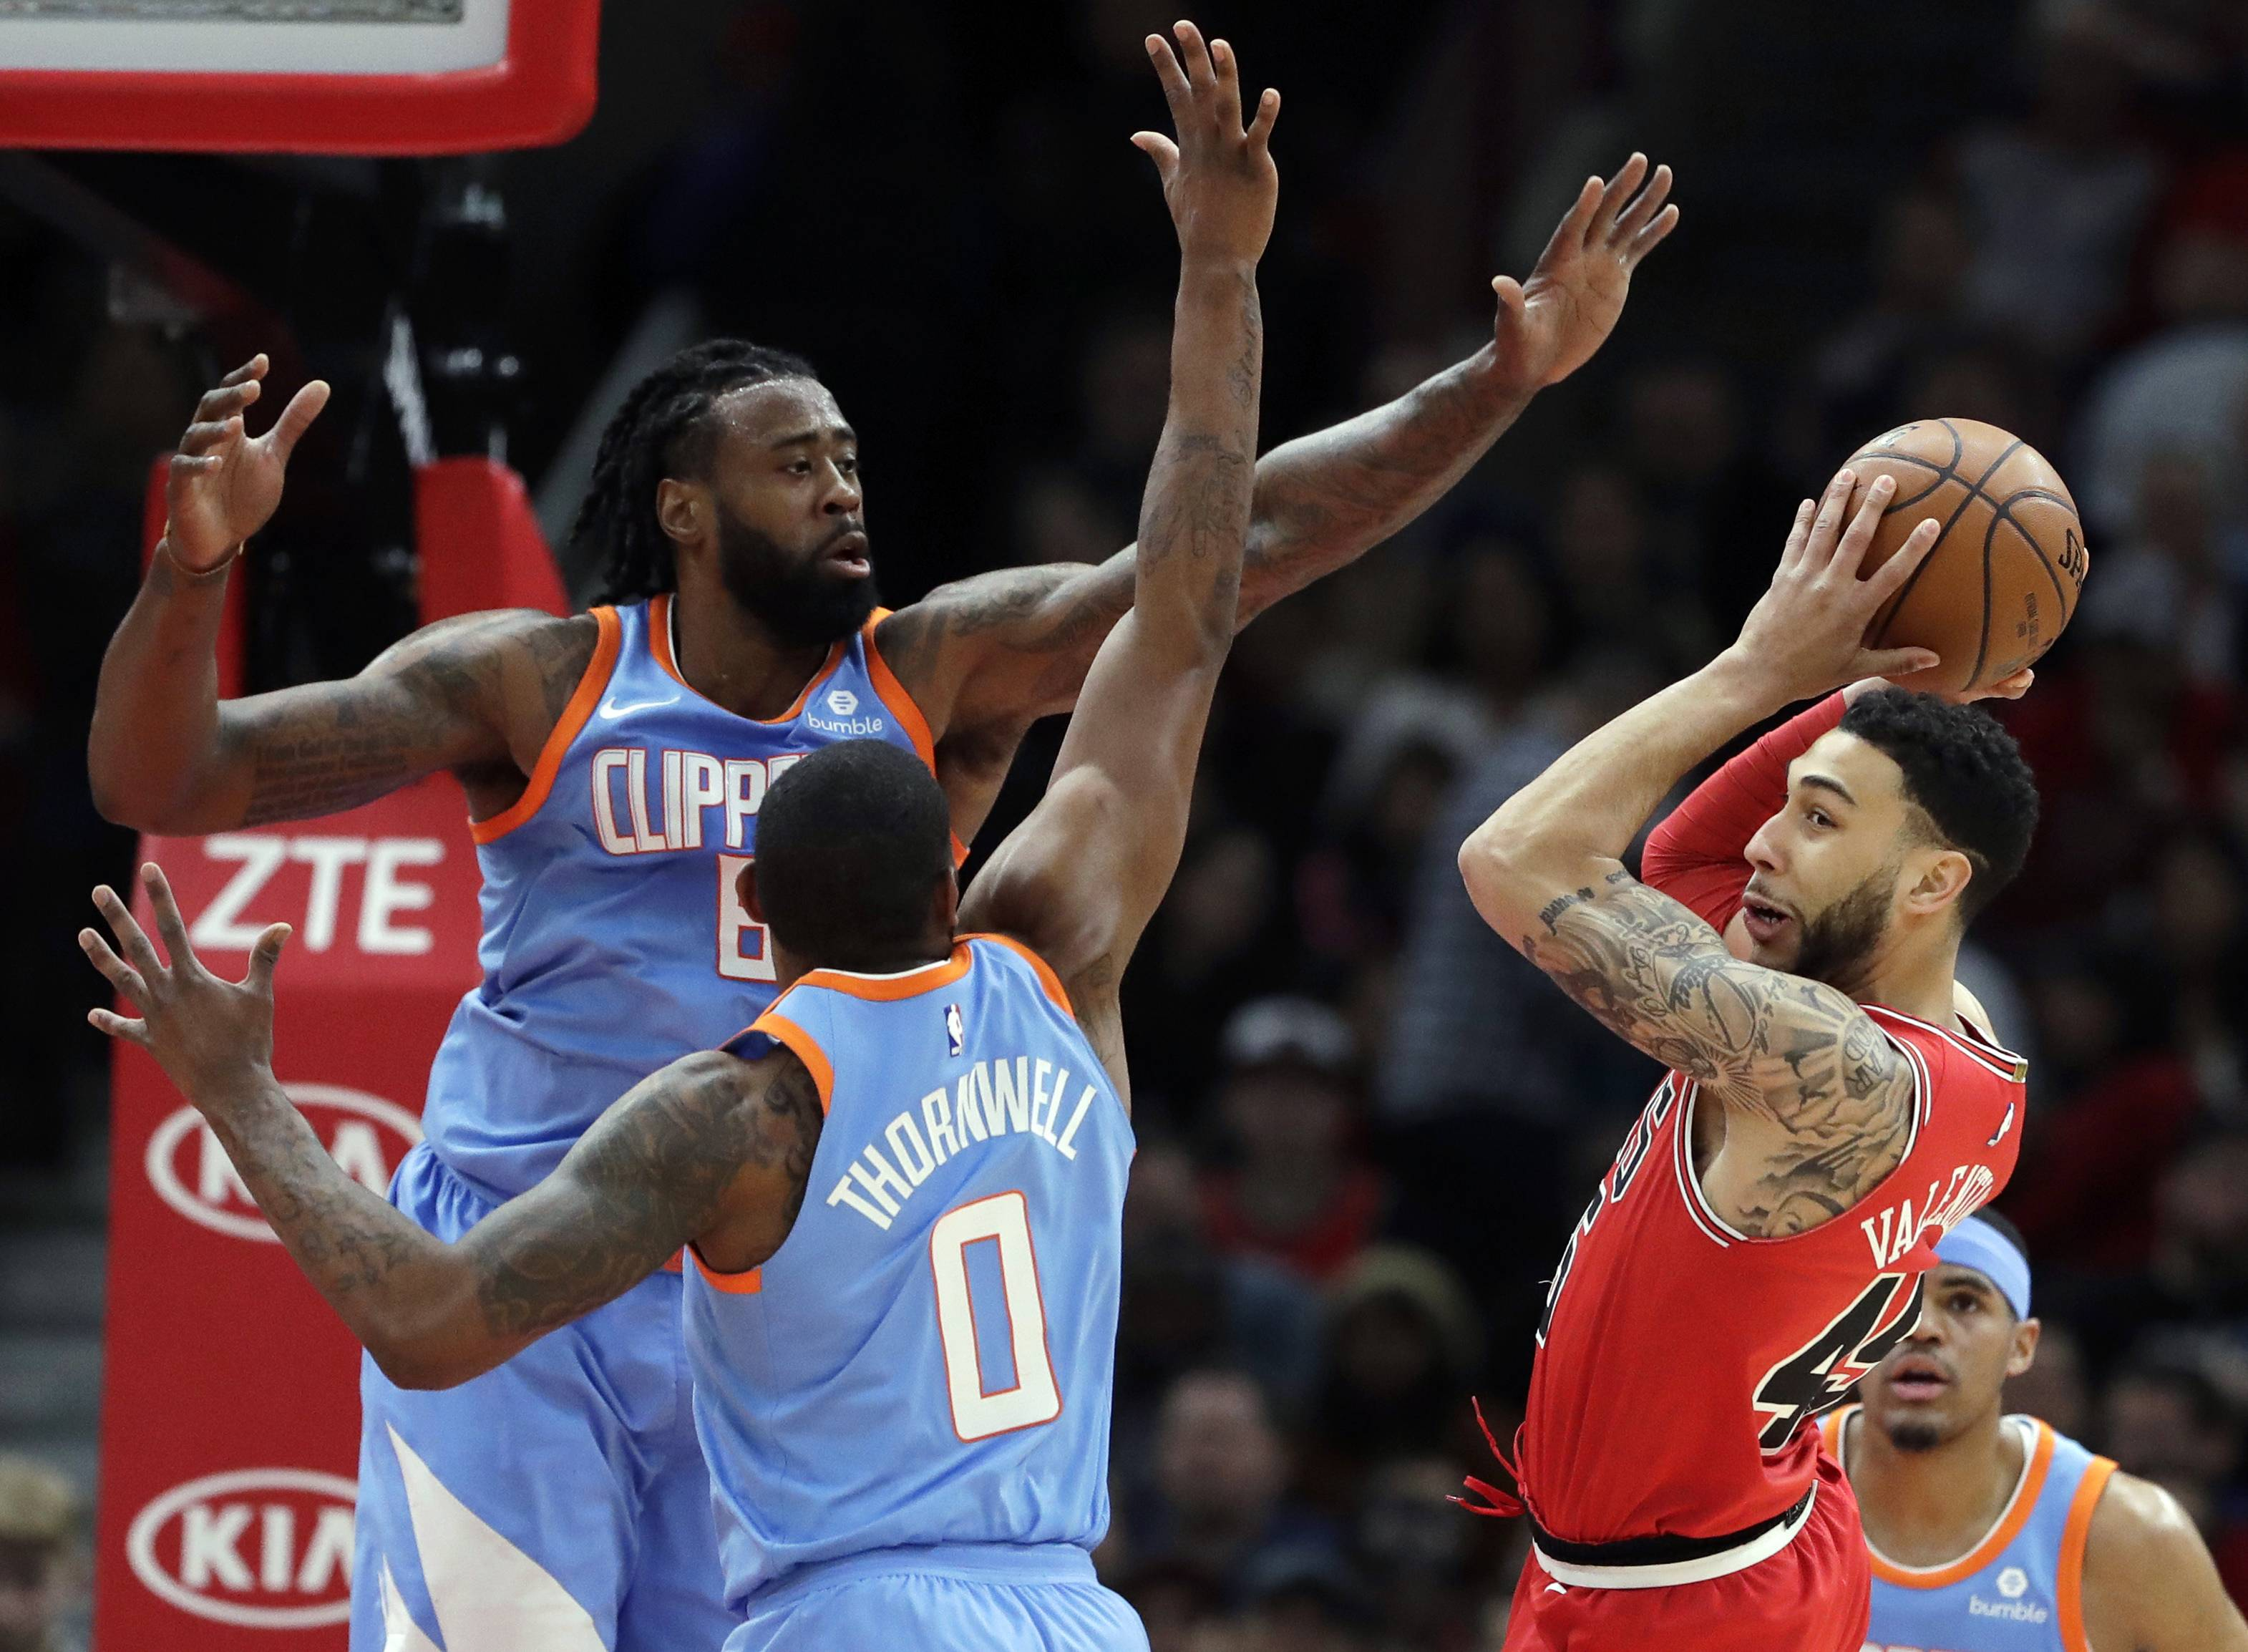 Bulls create their own bad luck in loss to Clippers